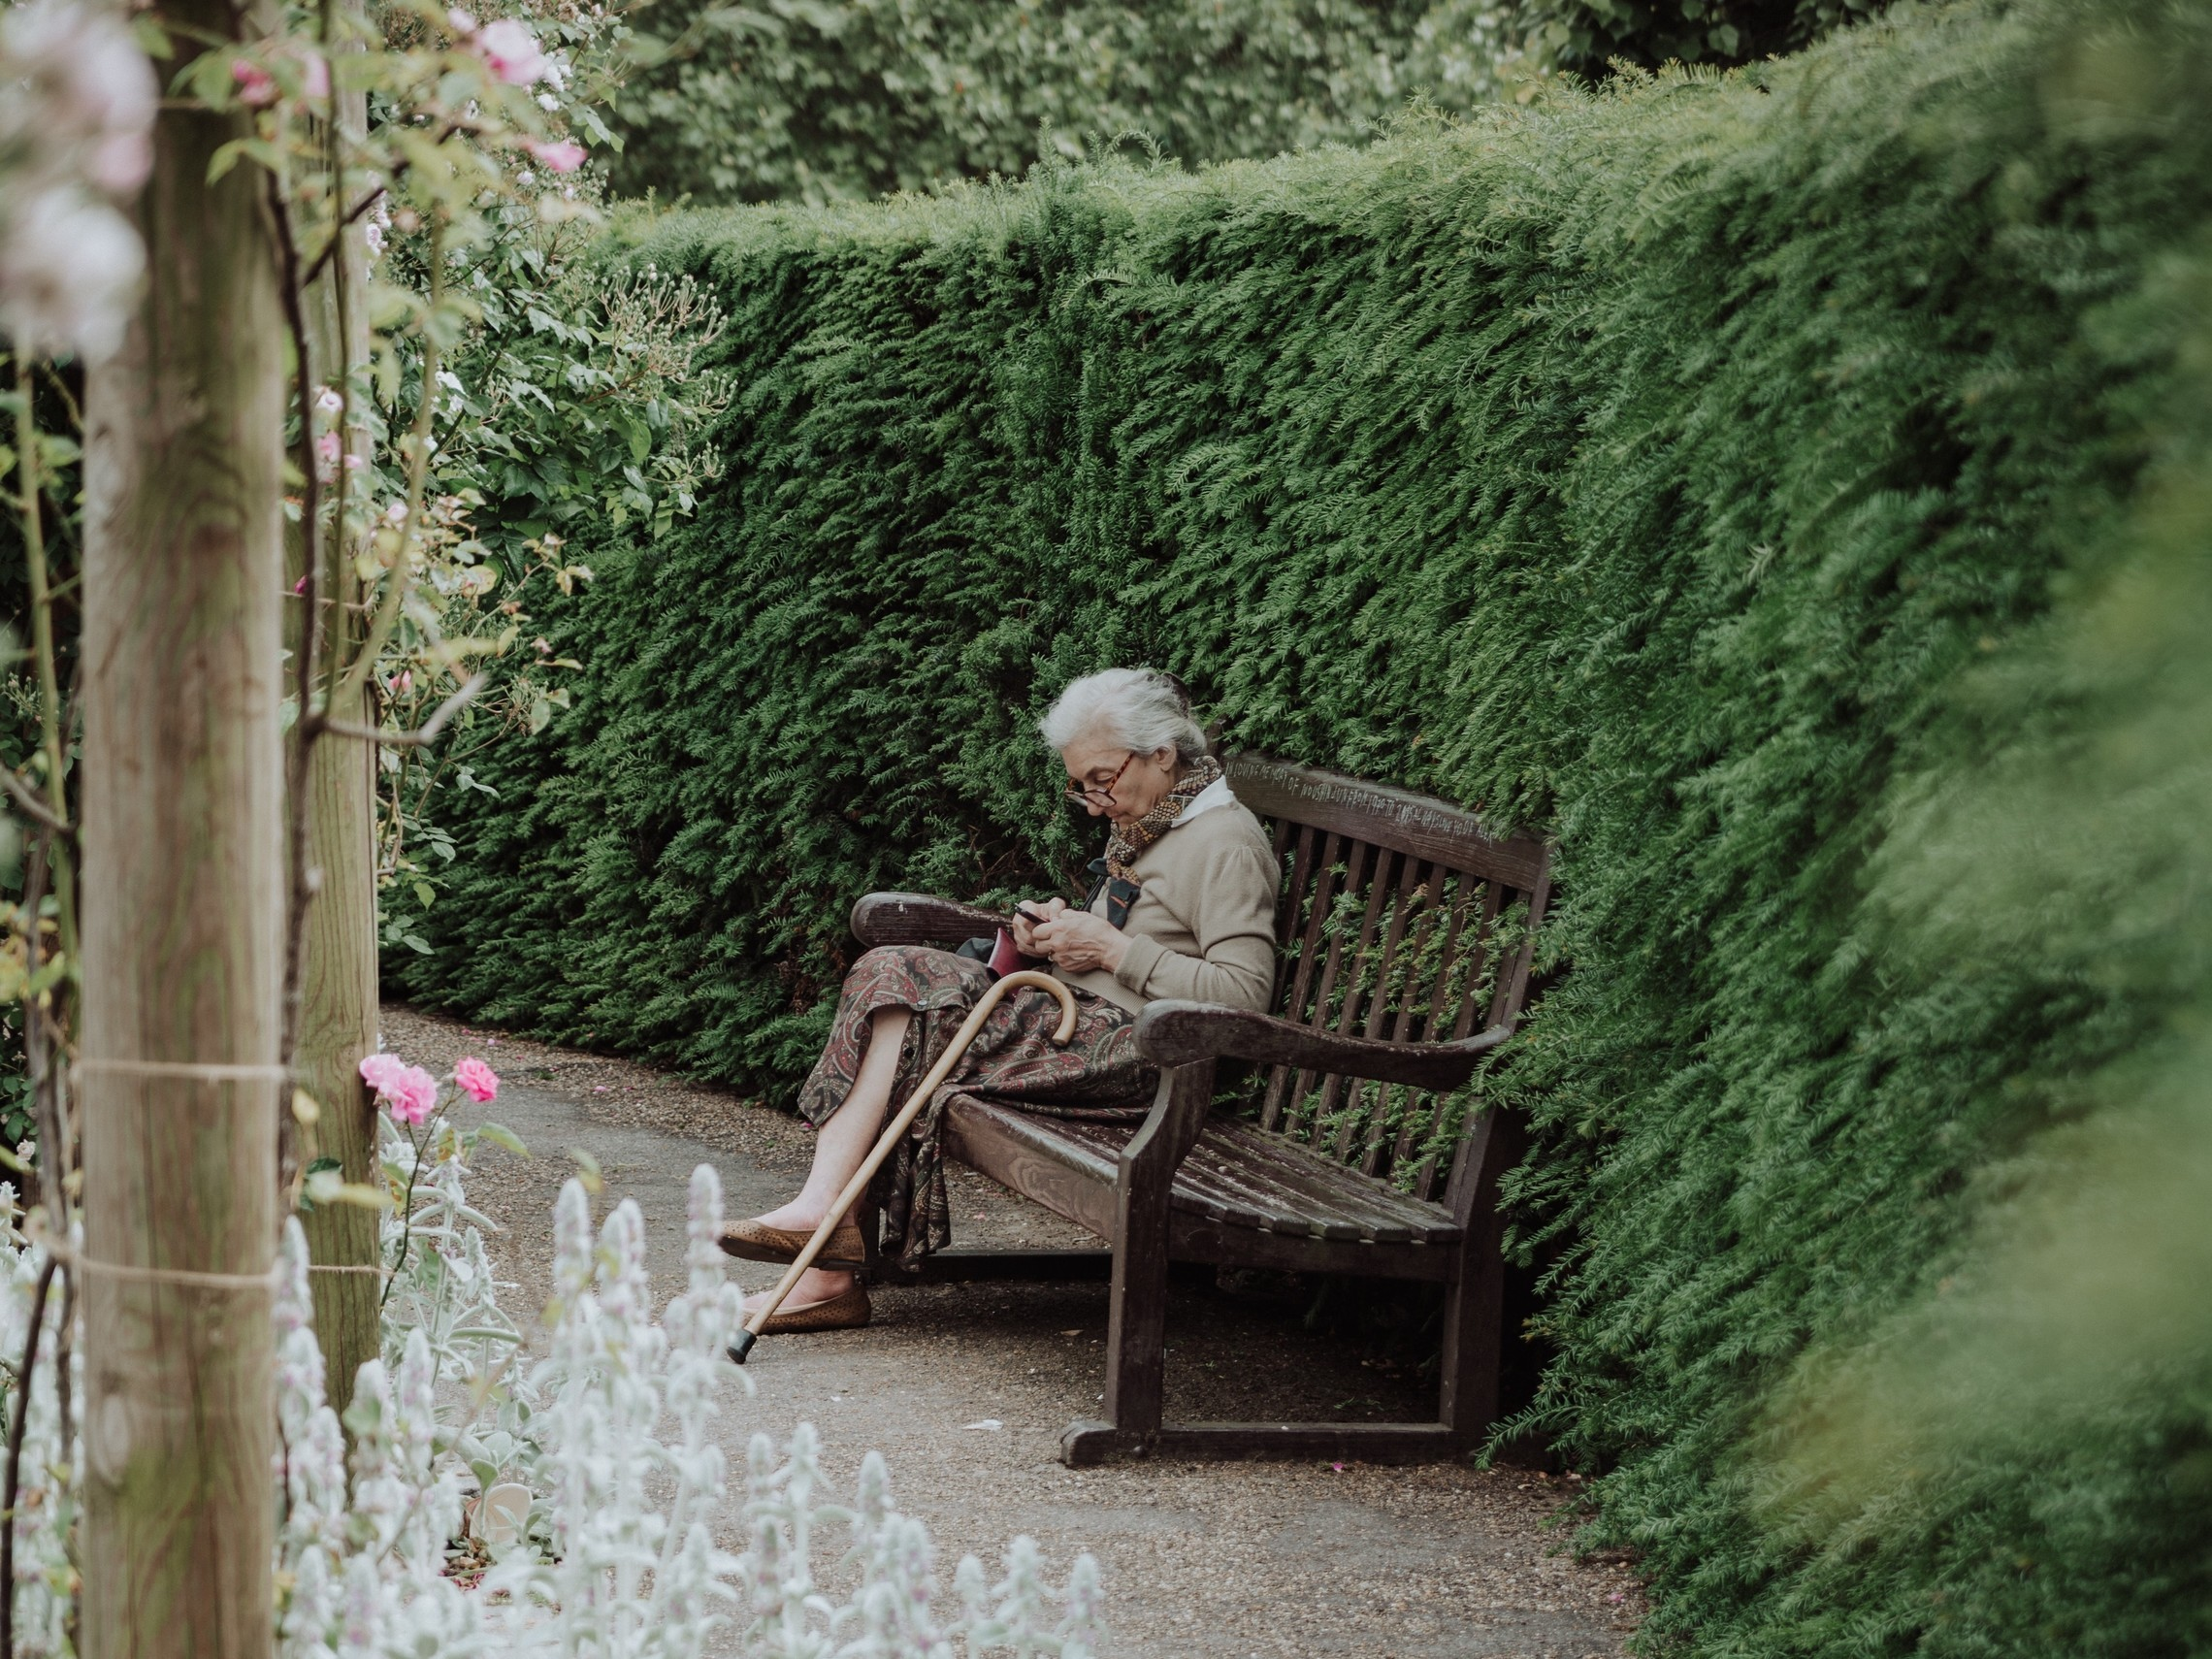 Old woman sits in a garden bench reading a book